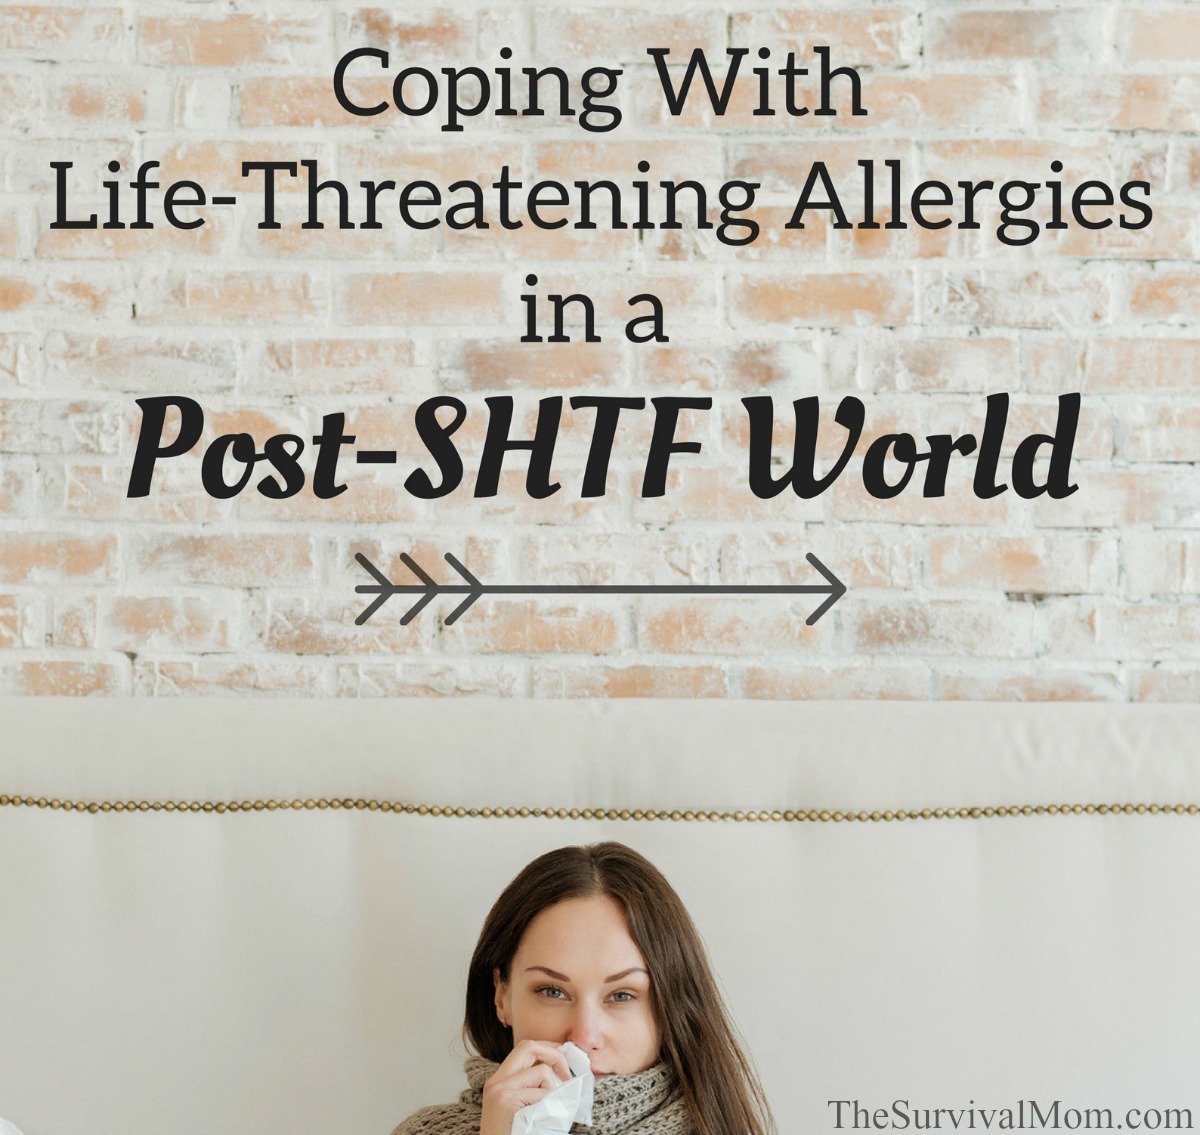 Coping With Life Threatening Allergies in a Post SHTF World via The Survival Mom